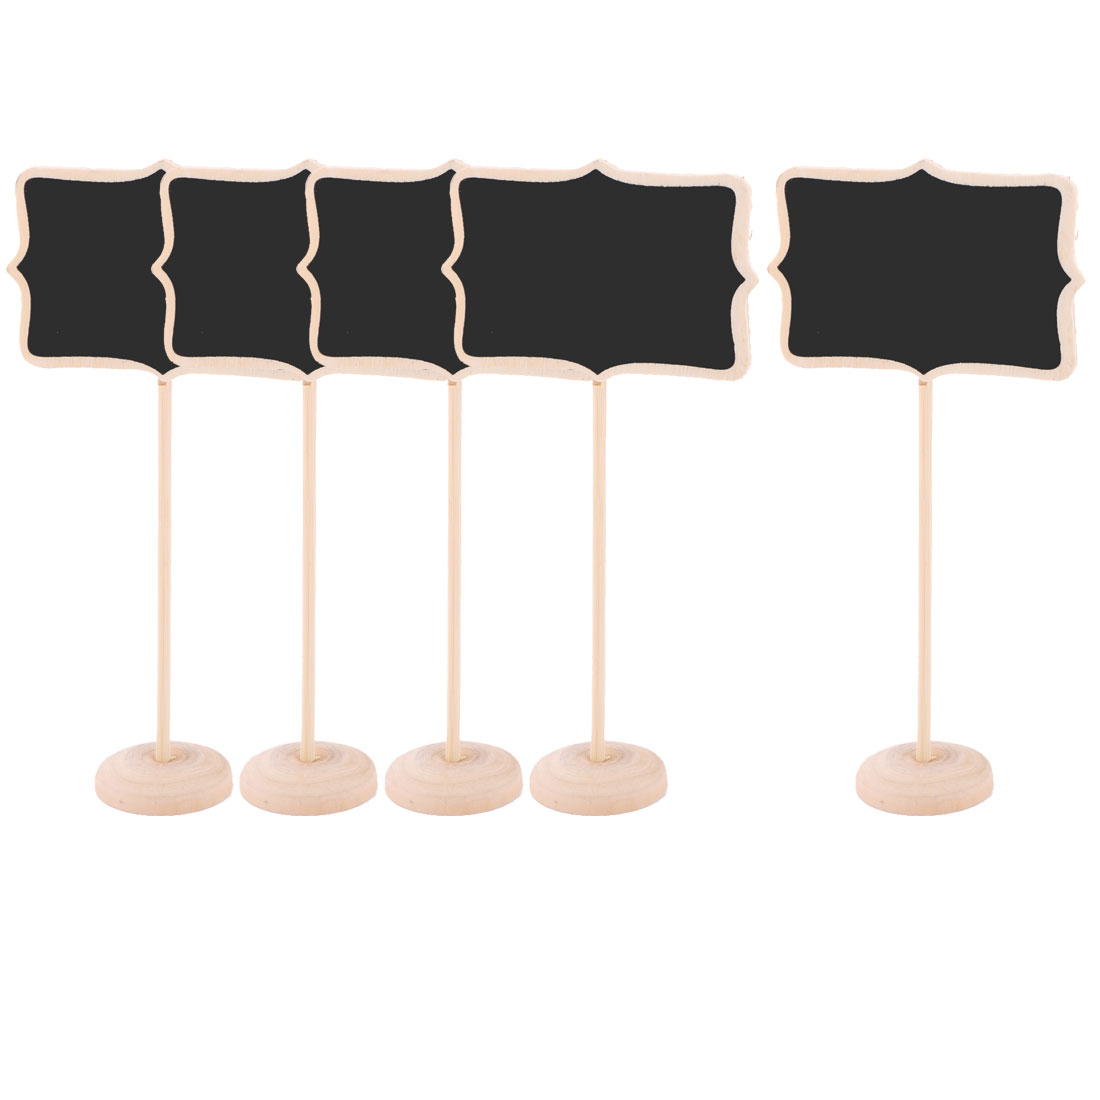 Family Wooden DIY Handcraft Memo Removable Standing Chalkboard Blackboard 5pcs